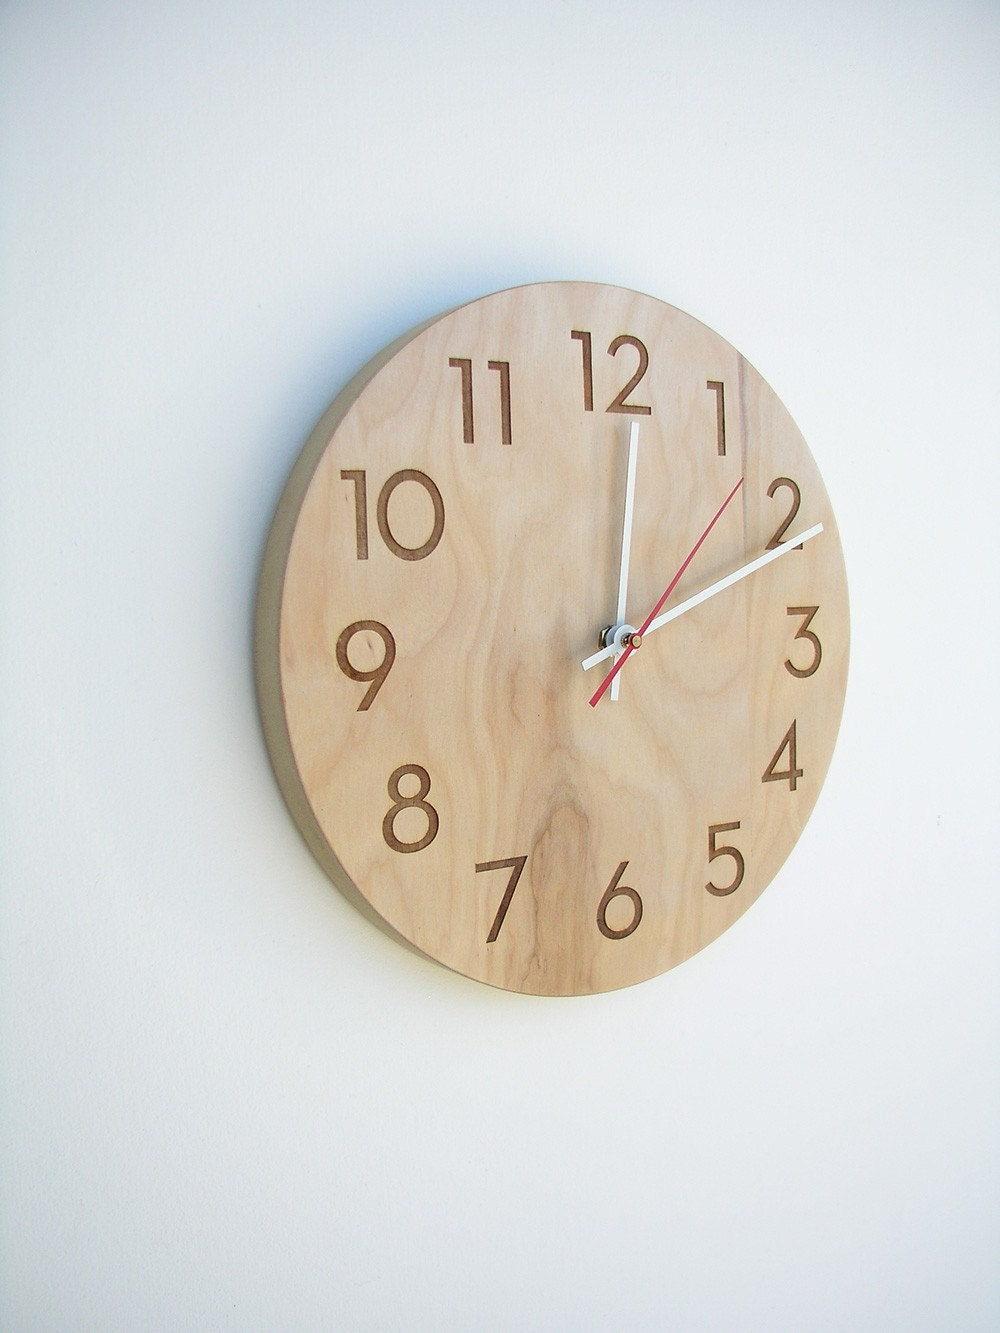 10 inch medium size modern wood wall clock with beautiful natural wood wall clock with beautiful natural woodgrain and classy modern numbers gallery photo gallery photo gallery photo amipublicfo Image collections